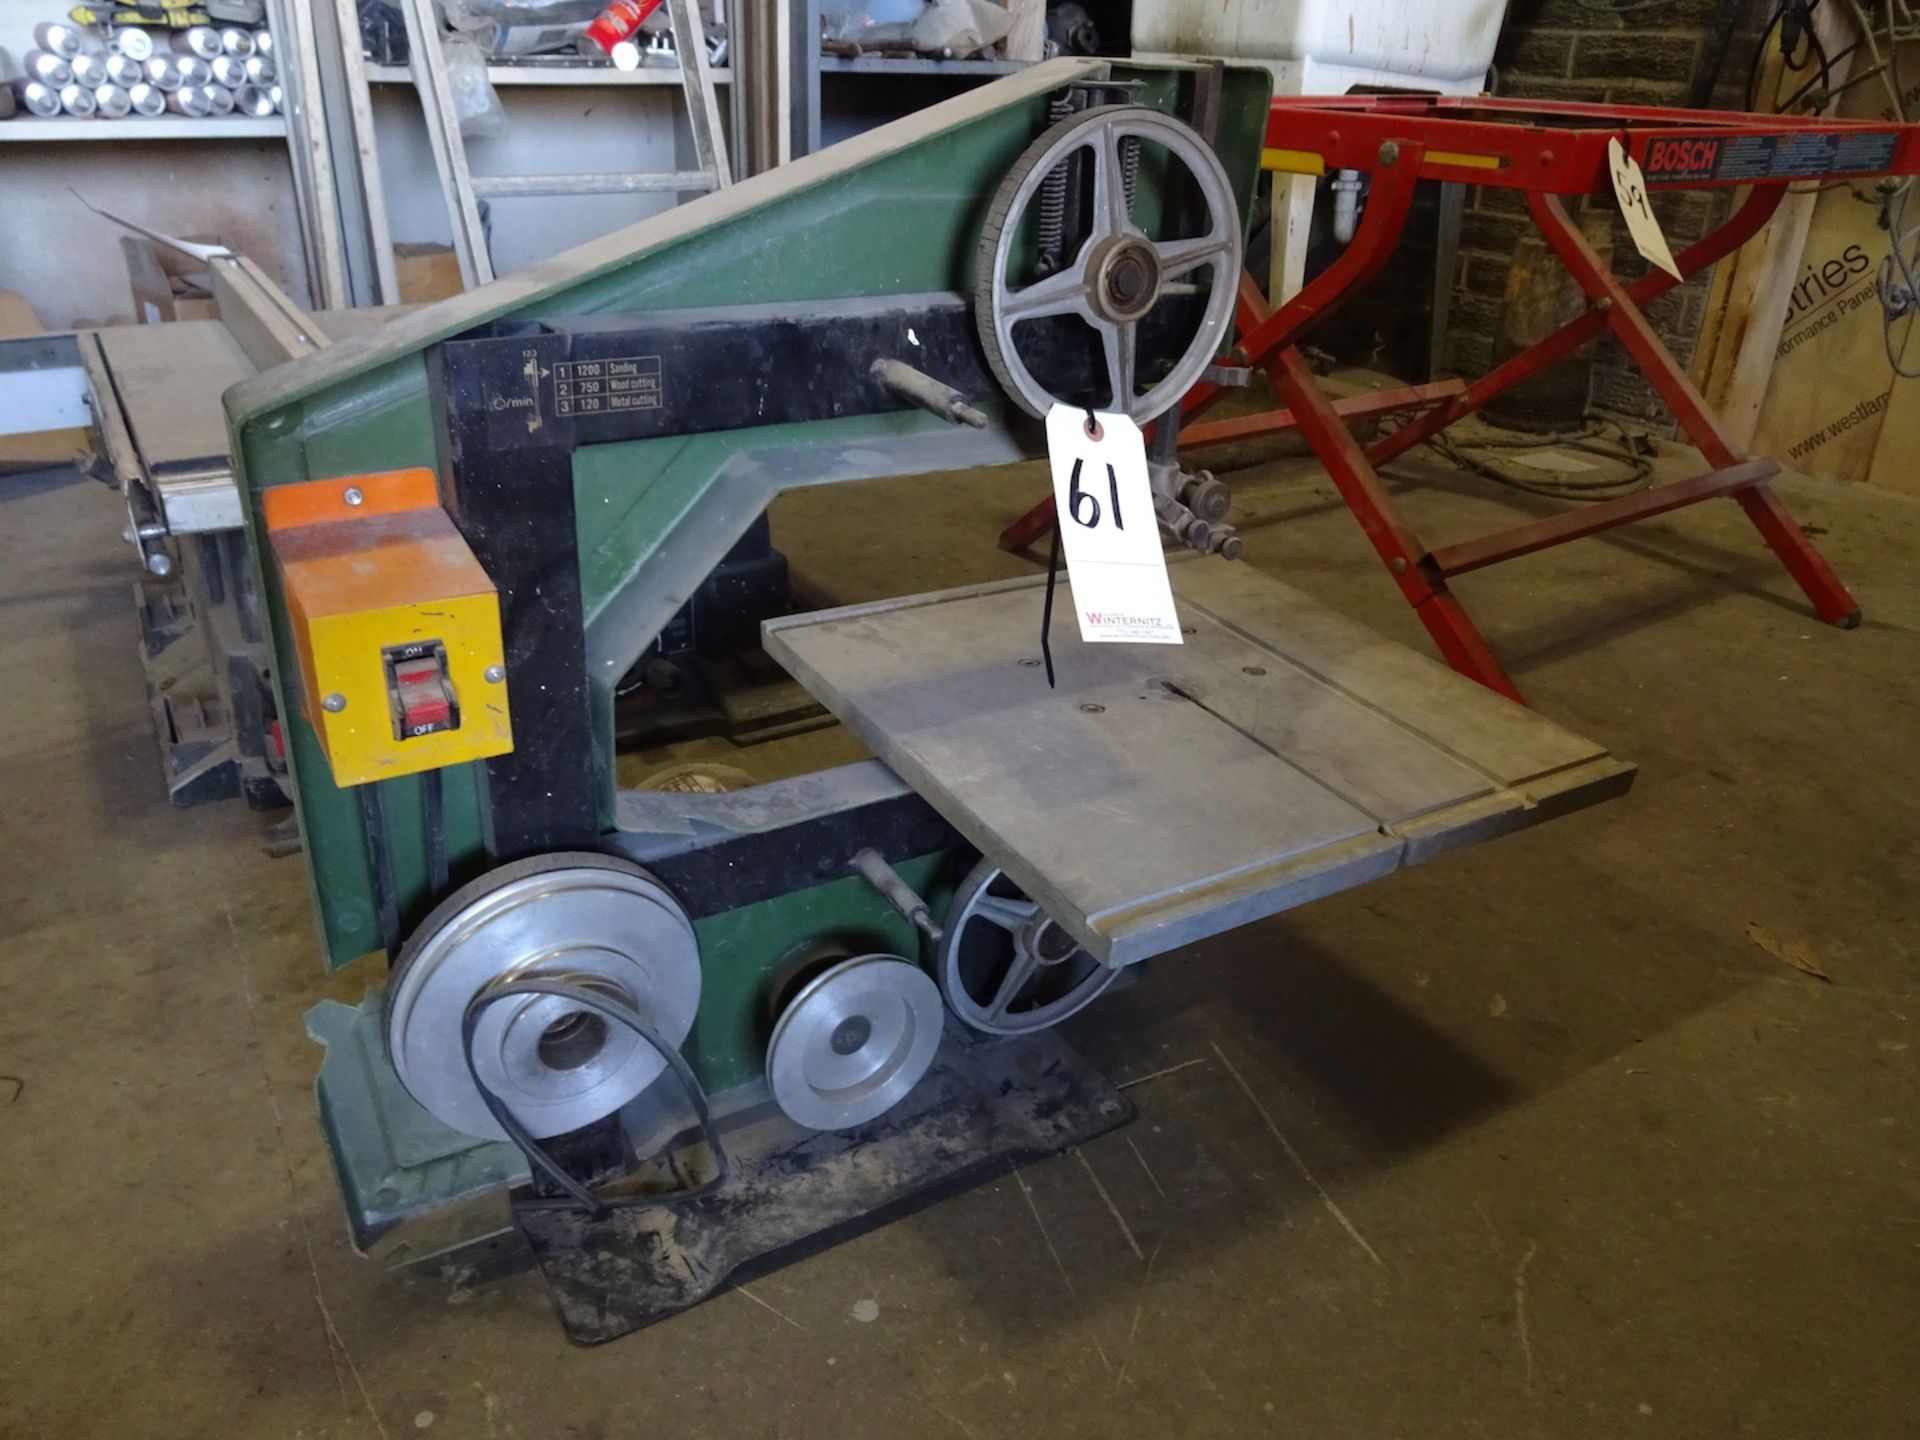 Lot 61 - TOYANG BAND SAW MODEL TME1-202-1, SINGLE PHASE, 1/3 H.P., S/N: 24560